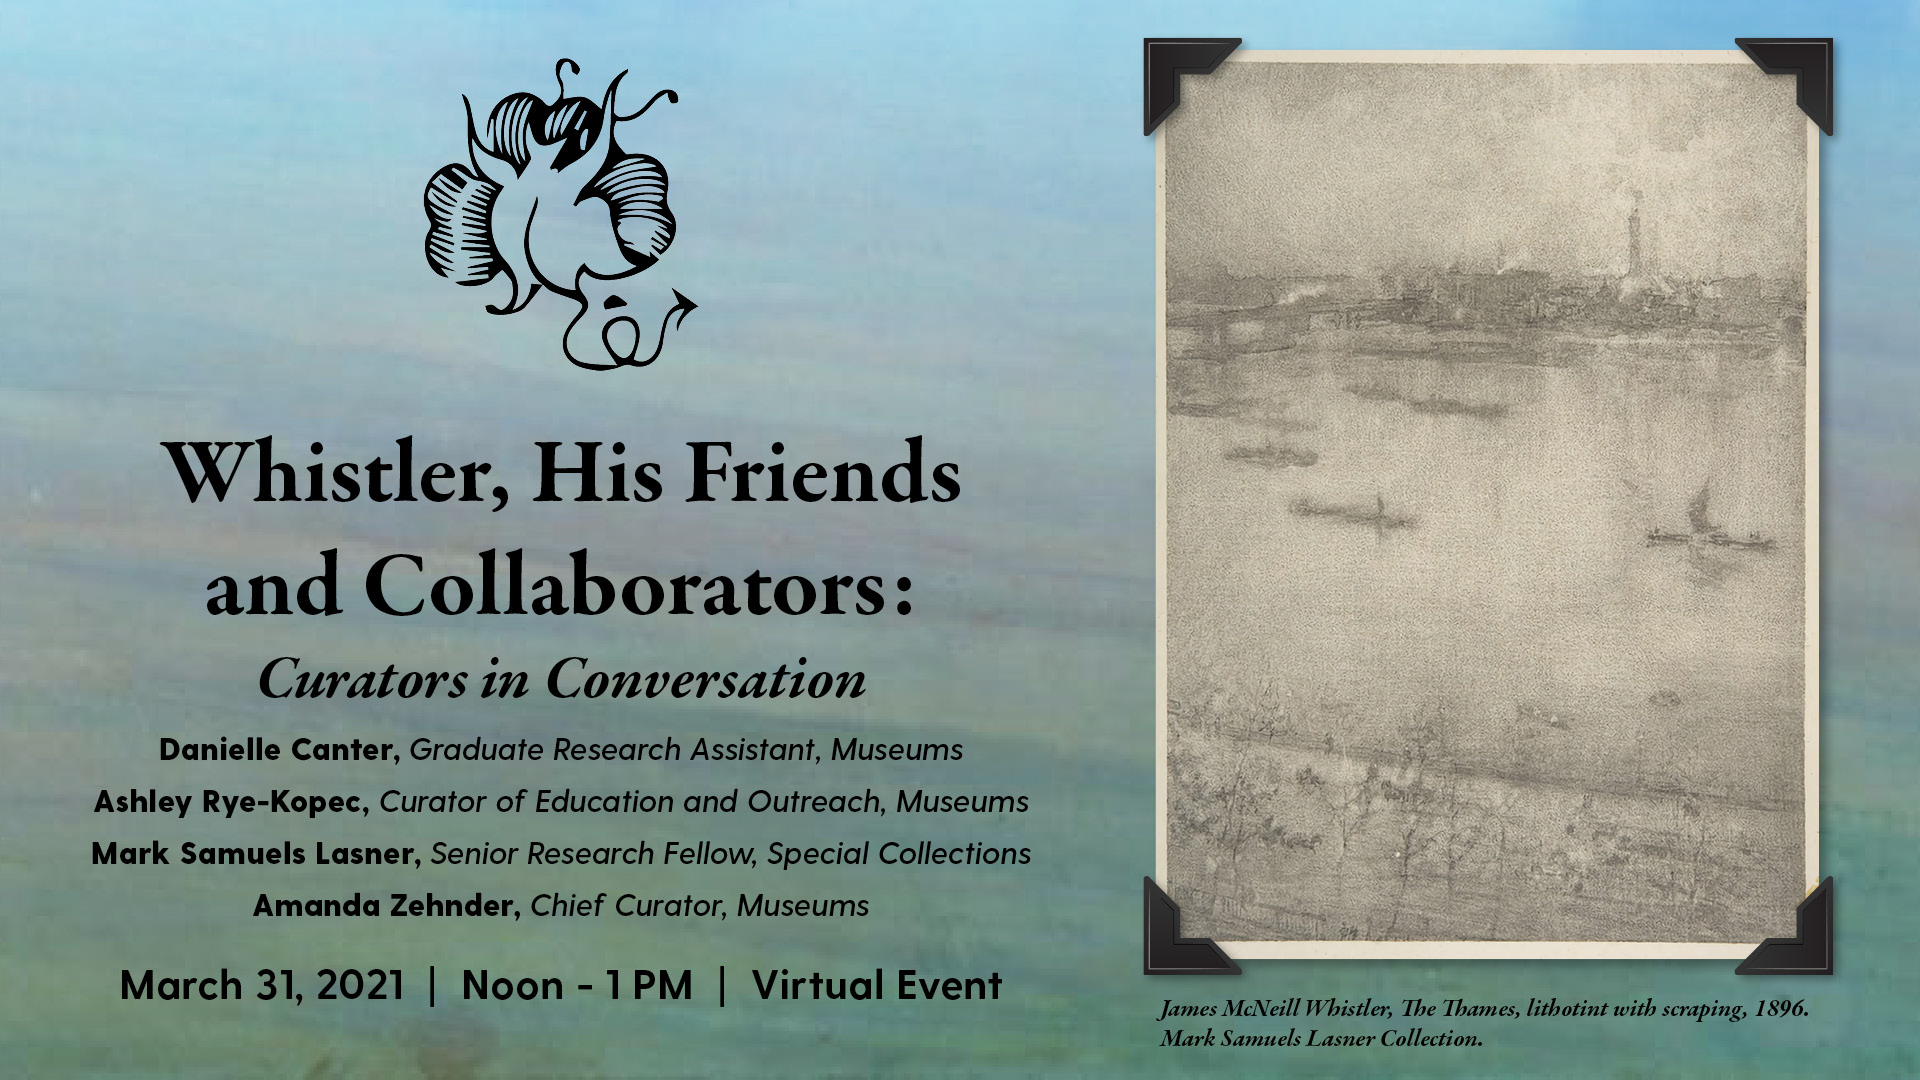 Whistler, His Friends and Collaborators: Curators in Conversation